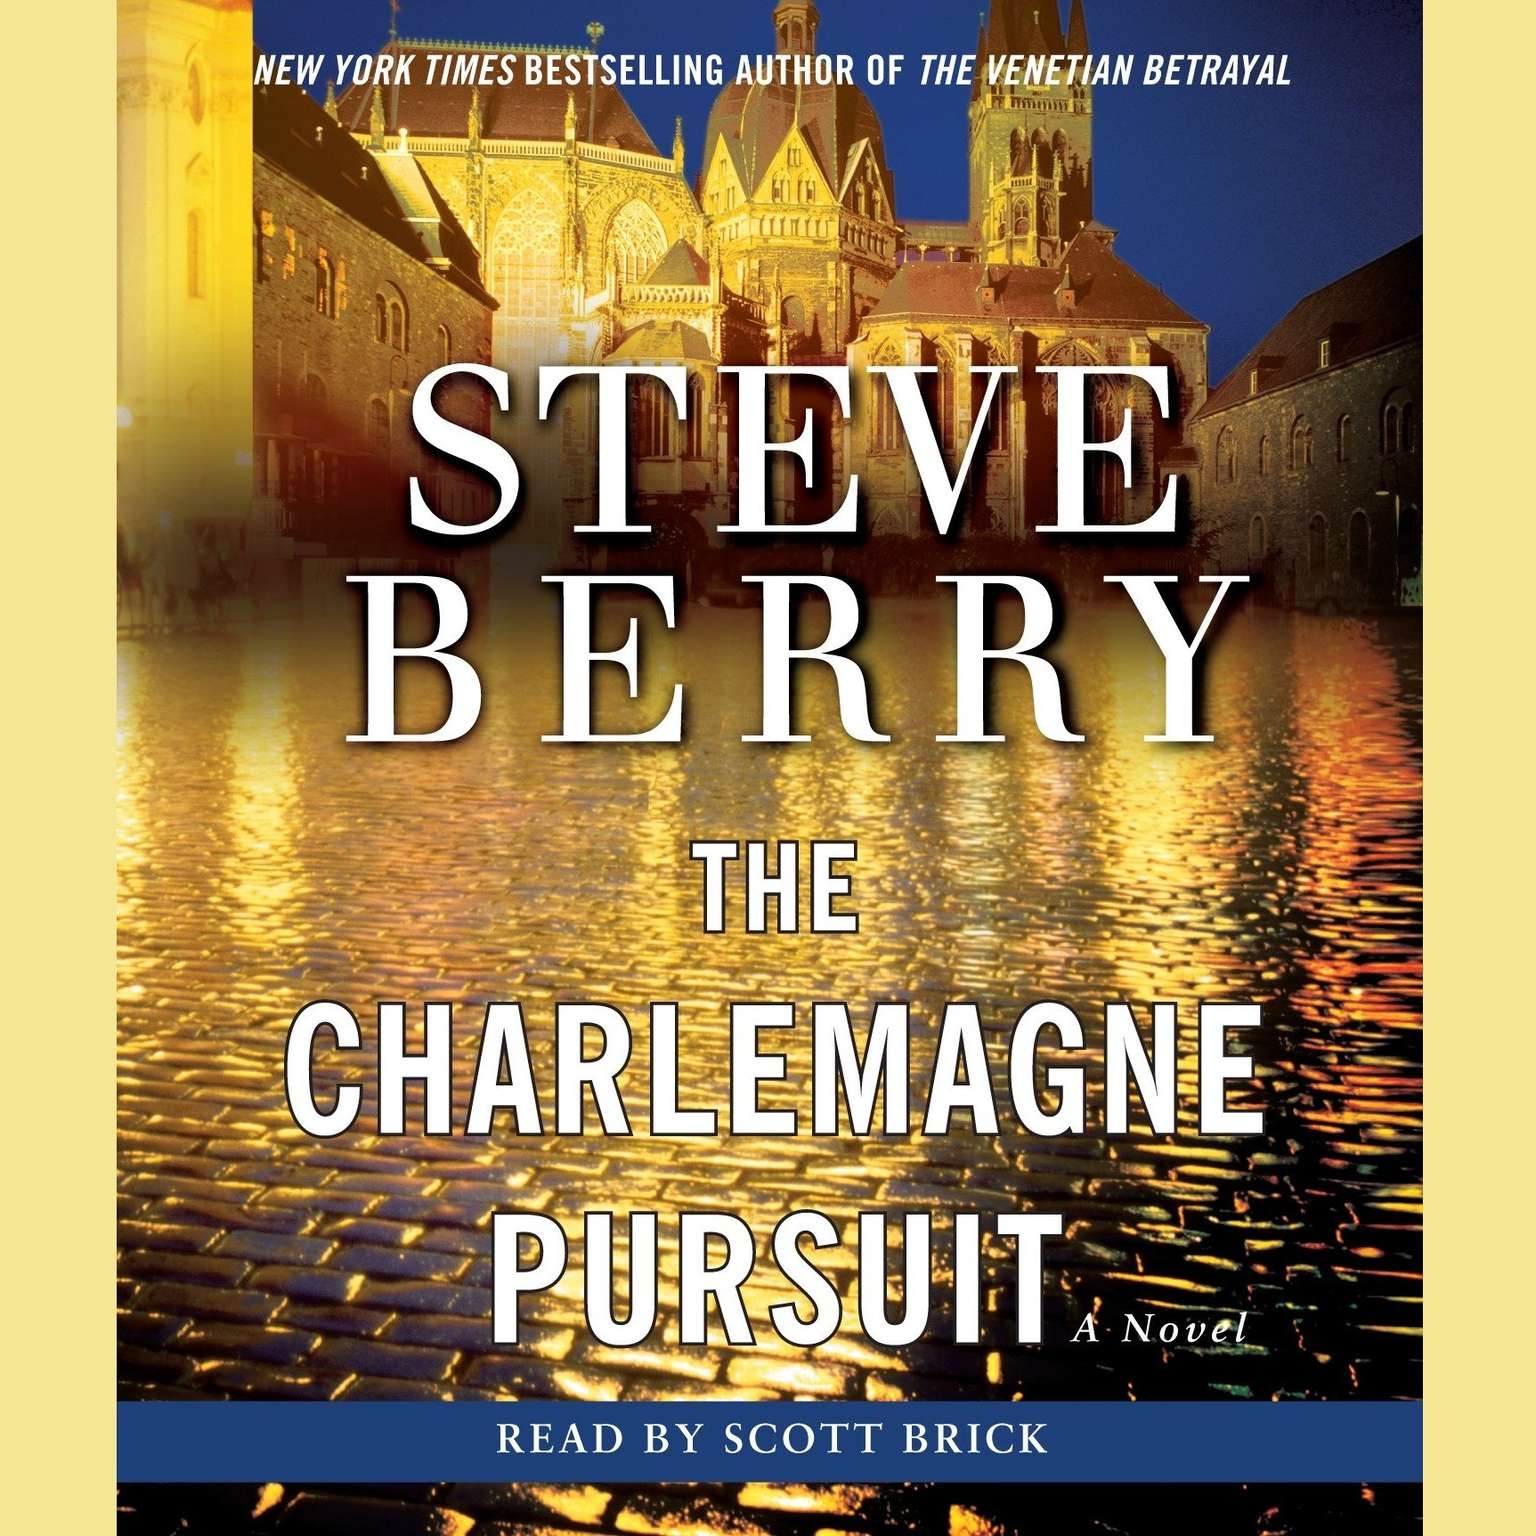 Printable The Charlemagne Pursuit Audiobook Cover Art